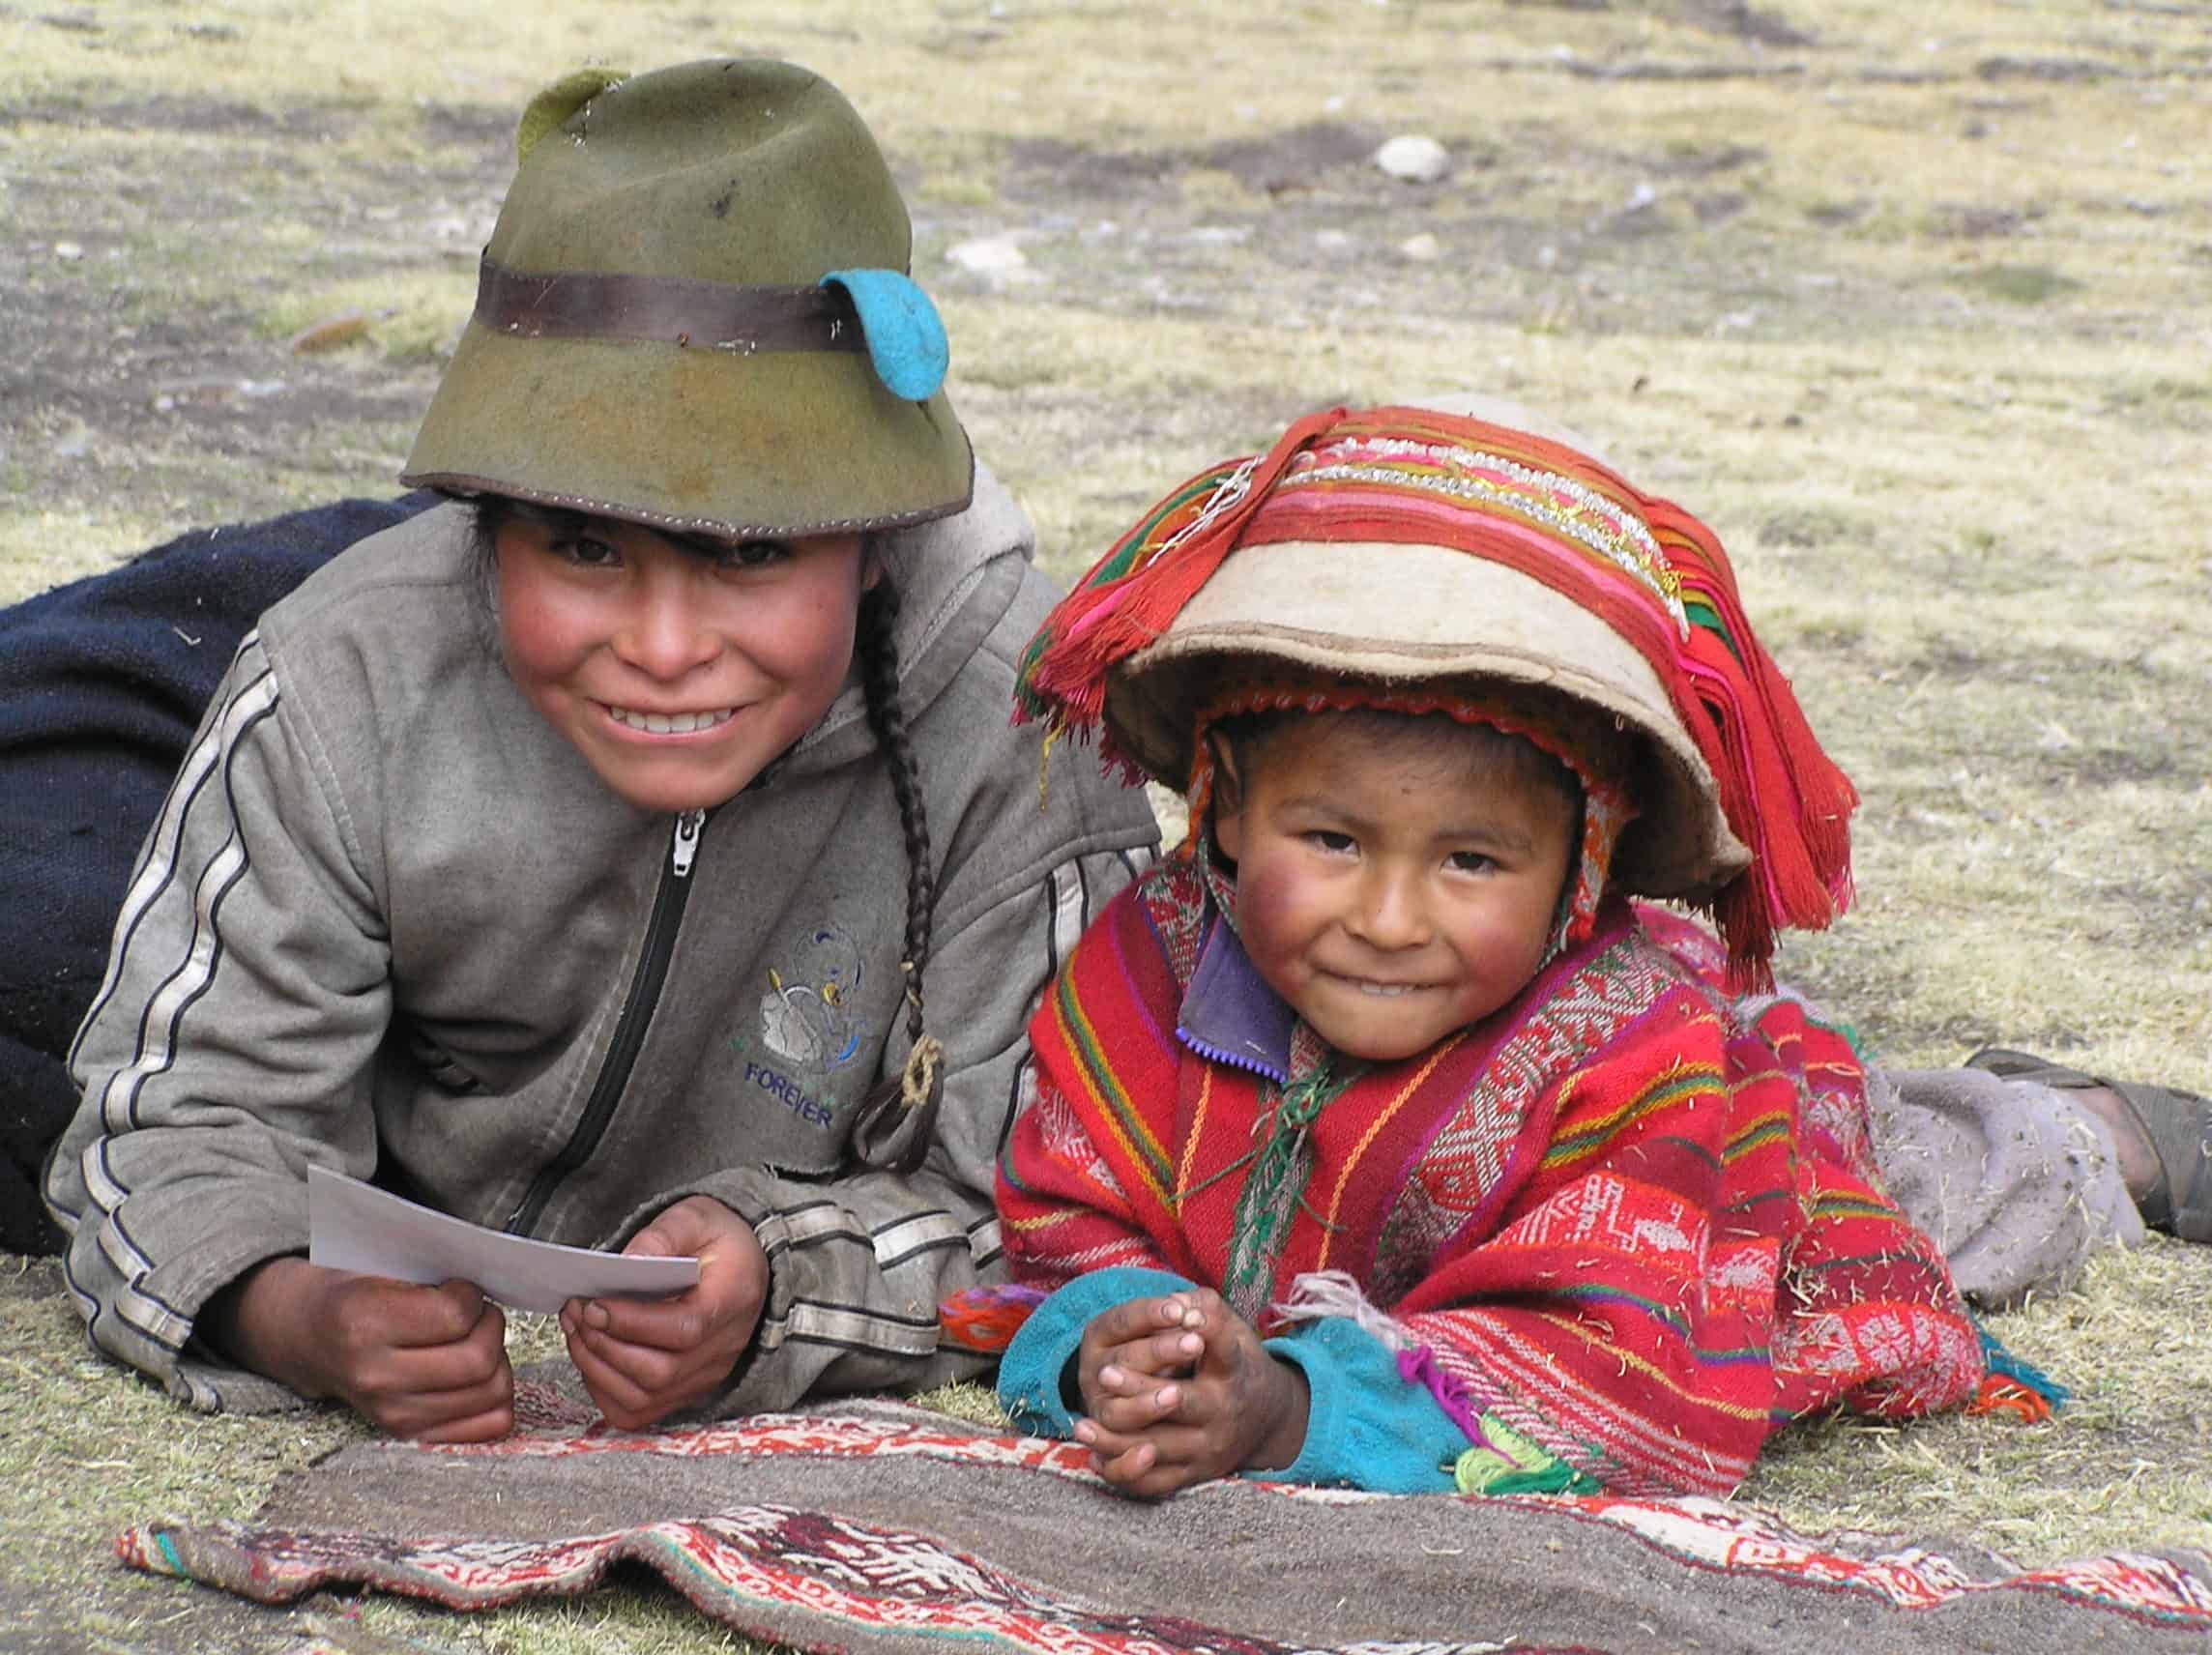 Lares treks visit remote Andean communities